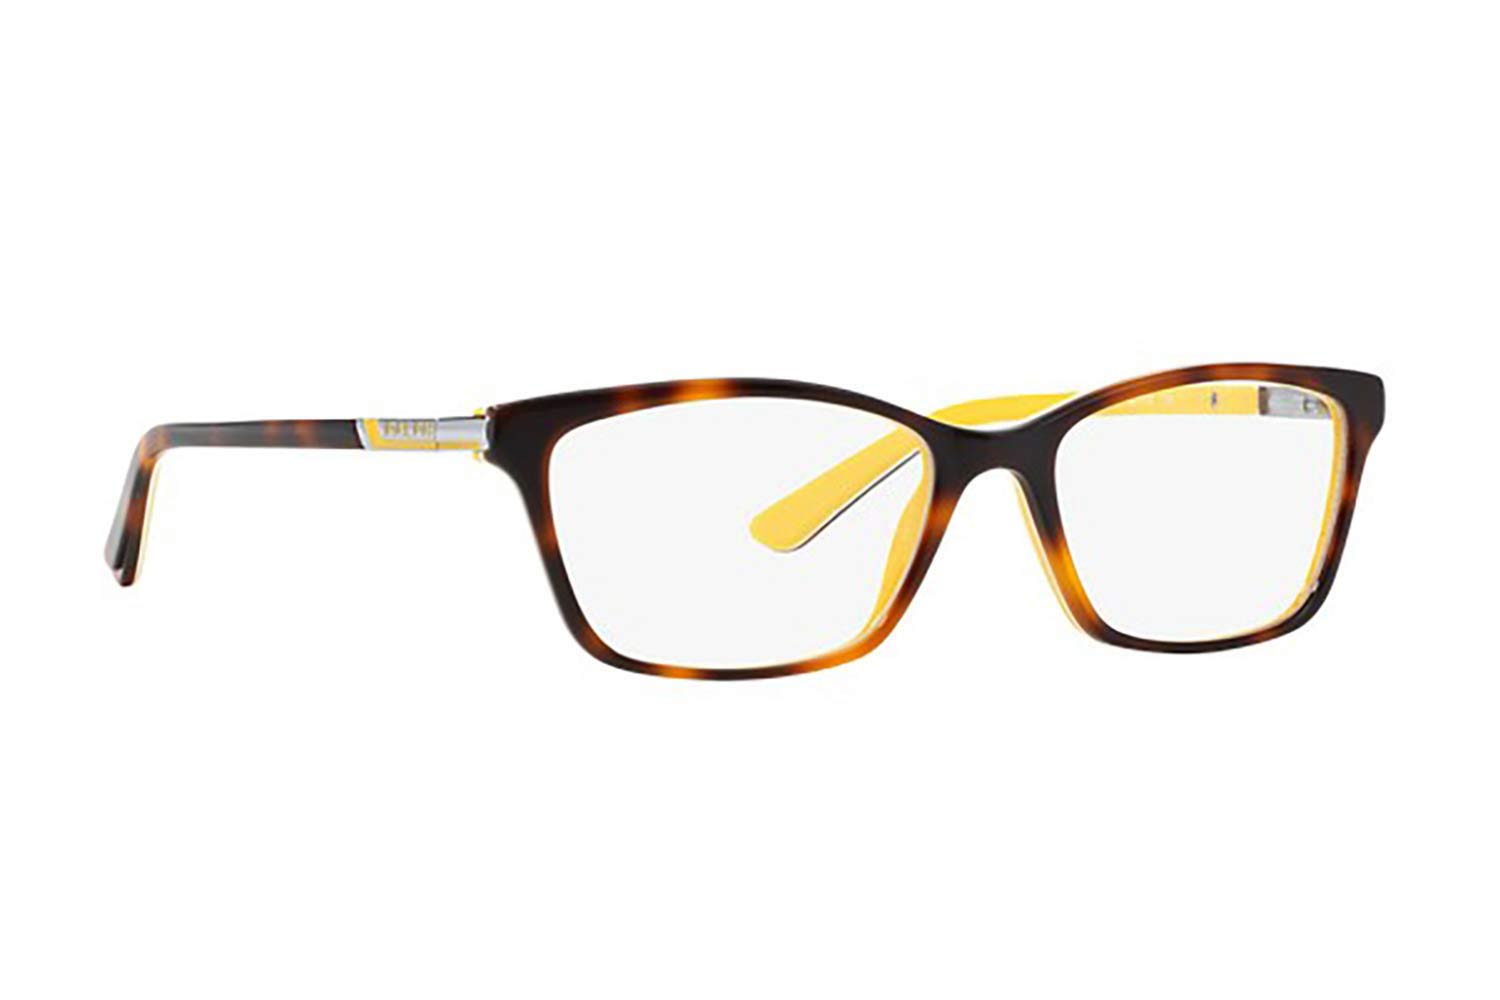 Glasses Frames Ralph Lauren : Eyewear Ralph By Ralph Lauren 7044 1142 Women Eye-Shop